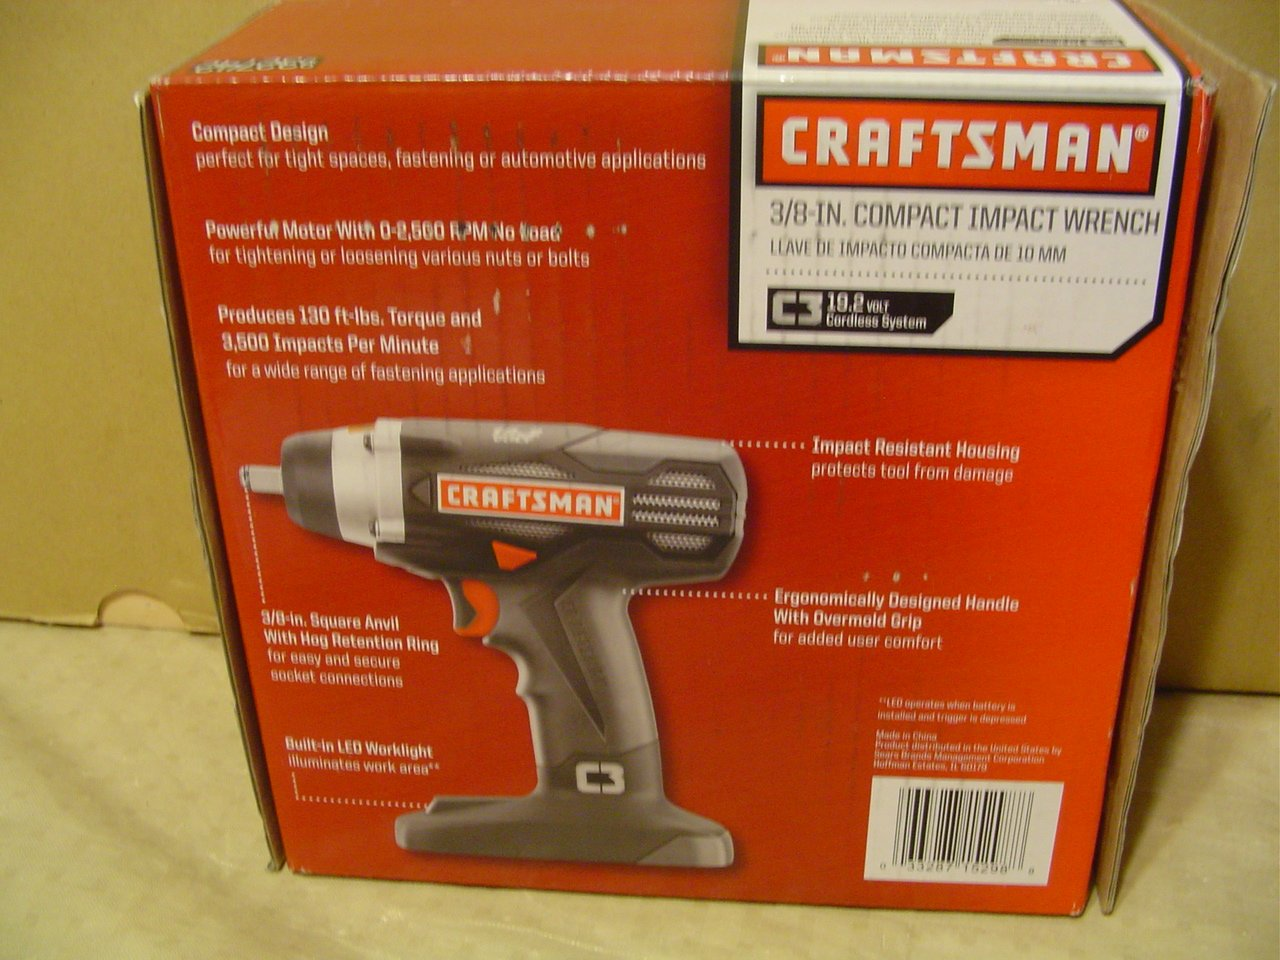 Craftsman 19.2v C3 3 8 Impact Wrench Bare Tool Only – No Battery – No Charger – Bulk Pack